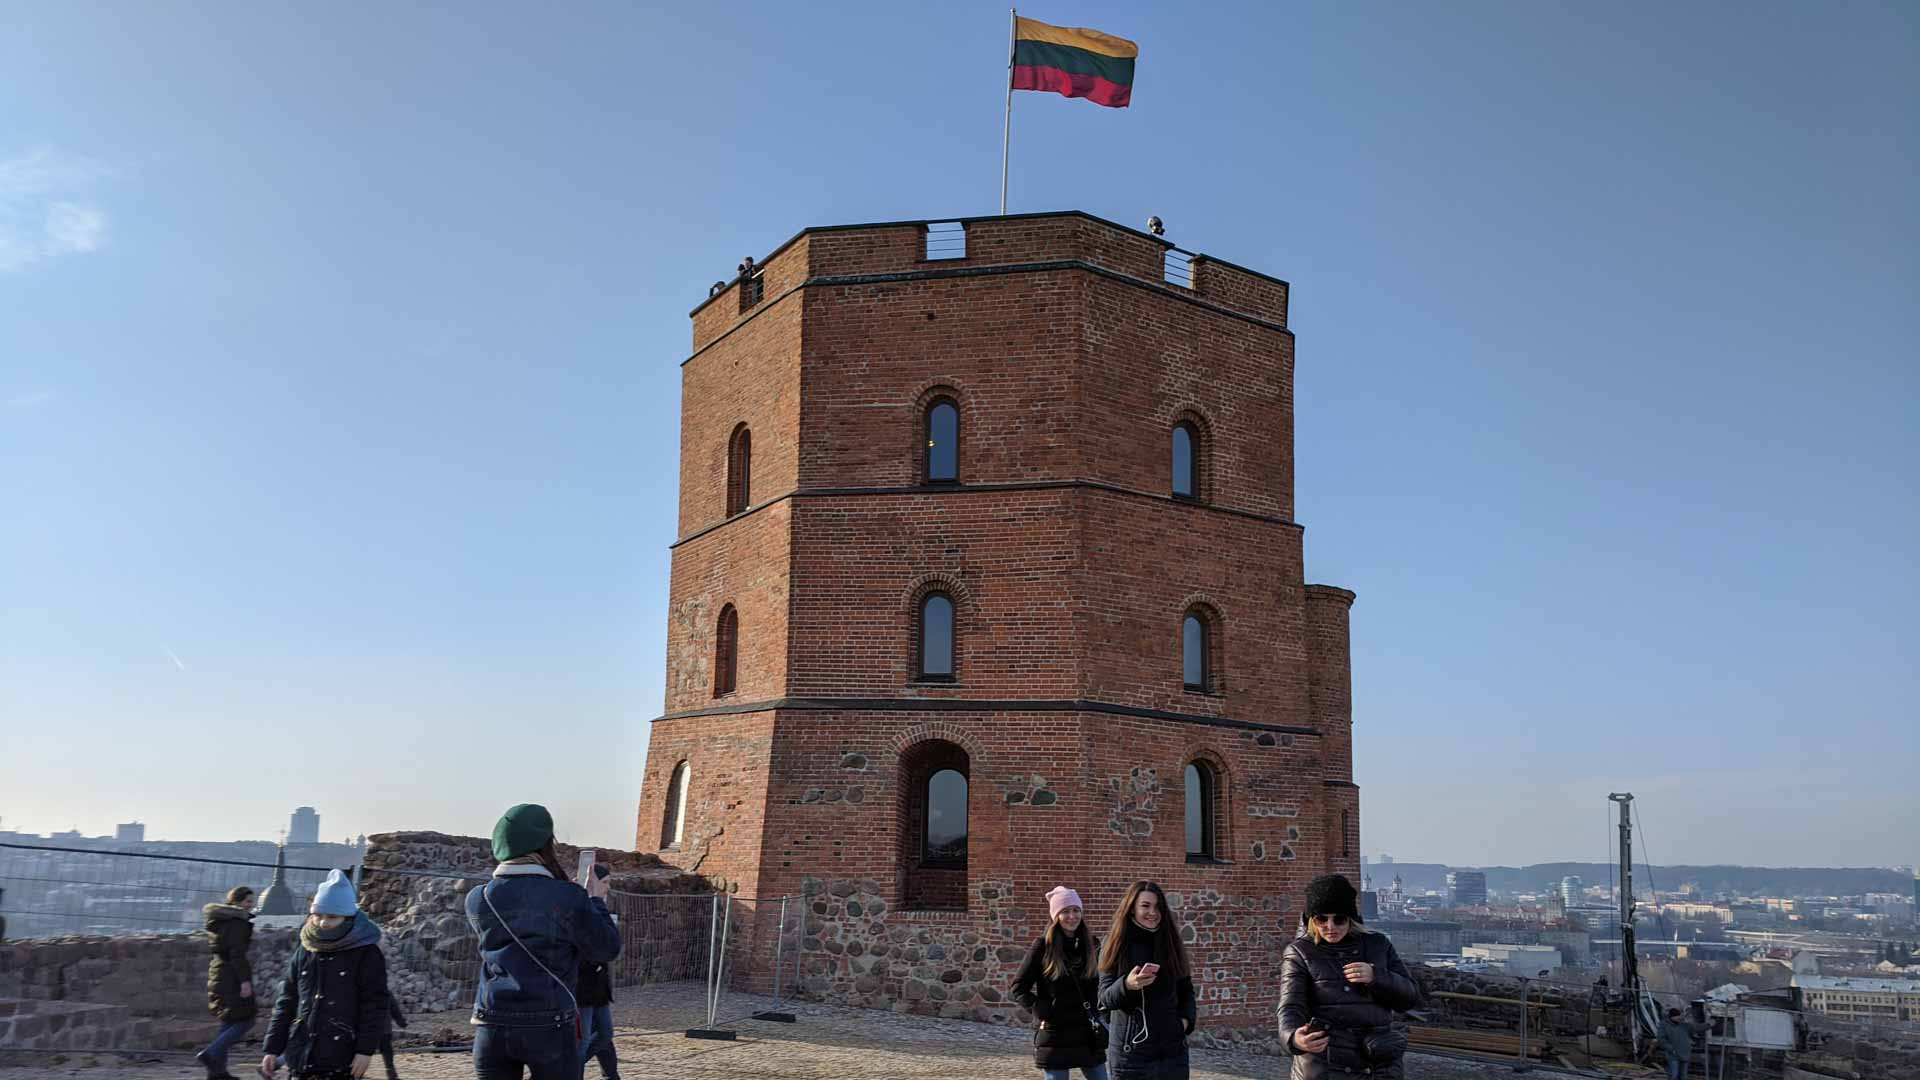 Gediminas Castle Tower in Vilnius, Lithuania